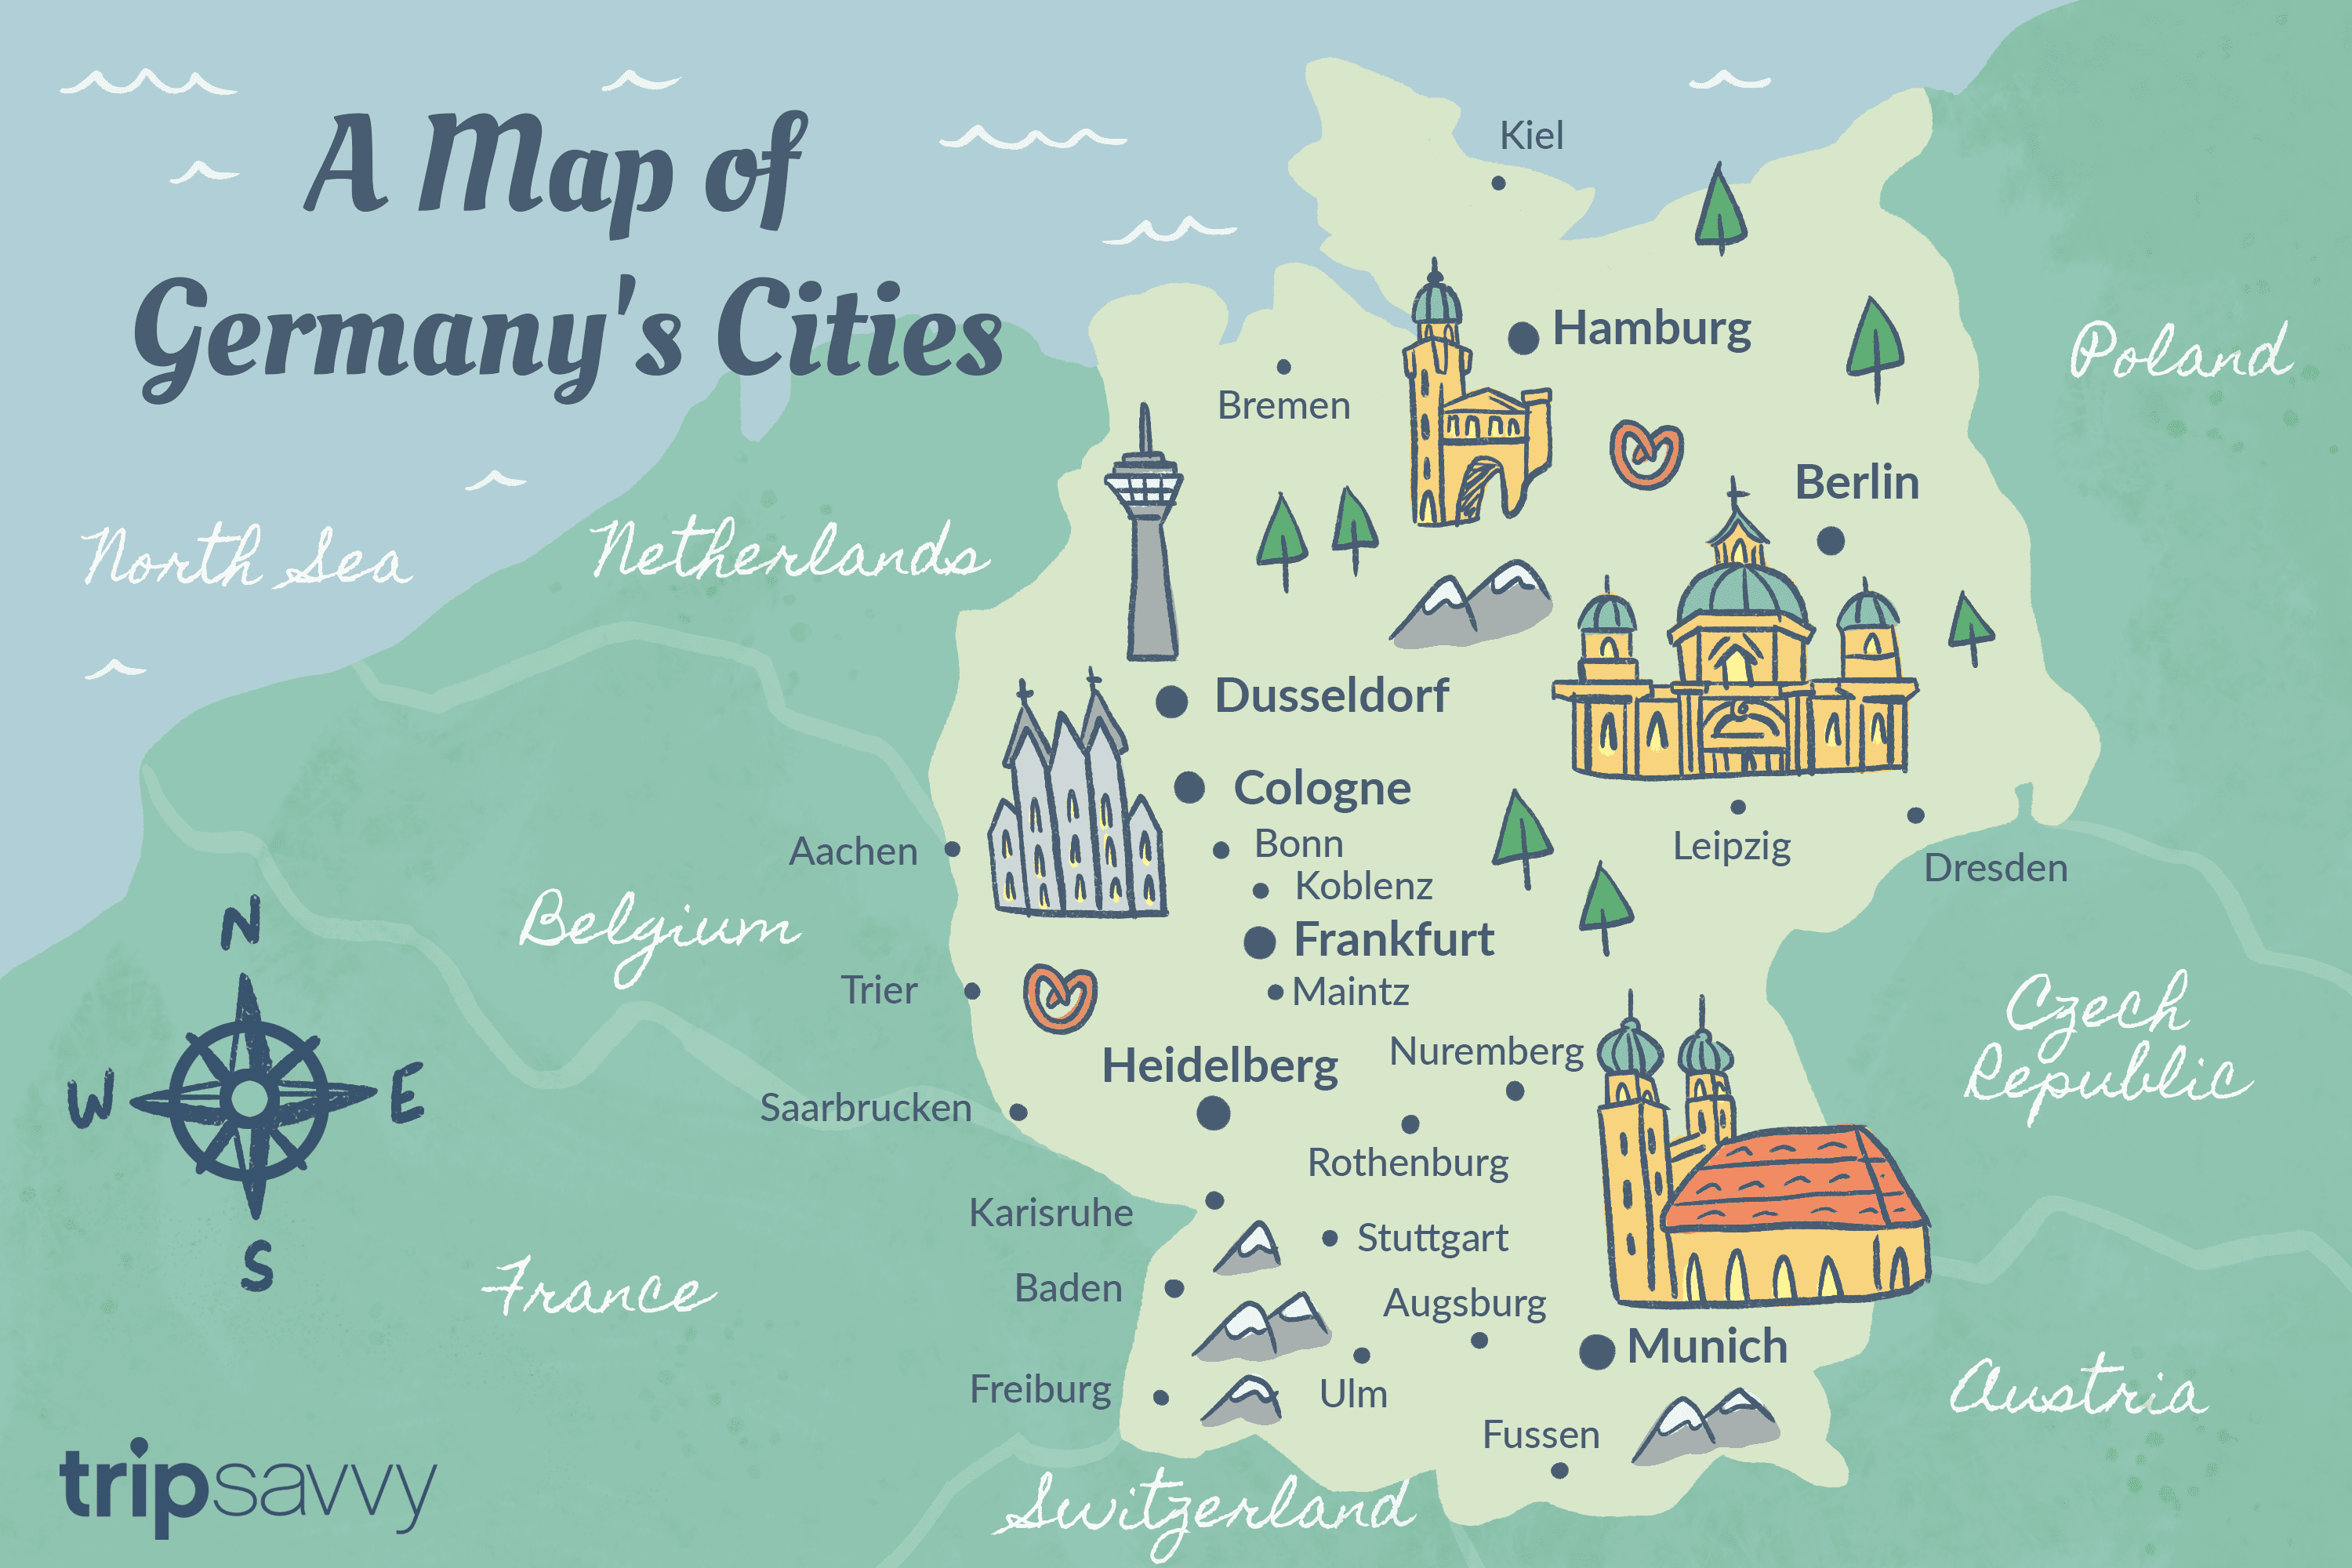 Berlin Map Of Germany.Germany Cities Map And Travel Guide